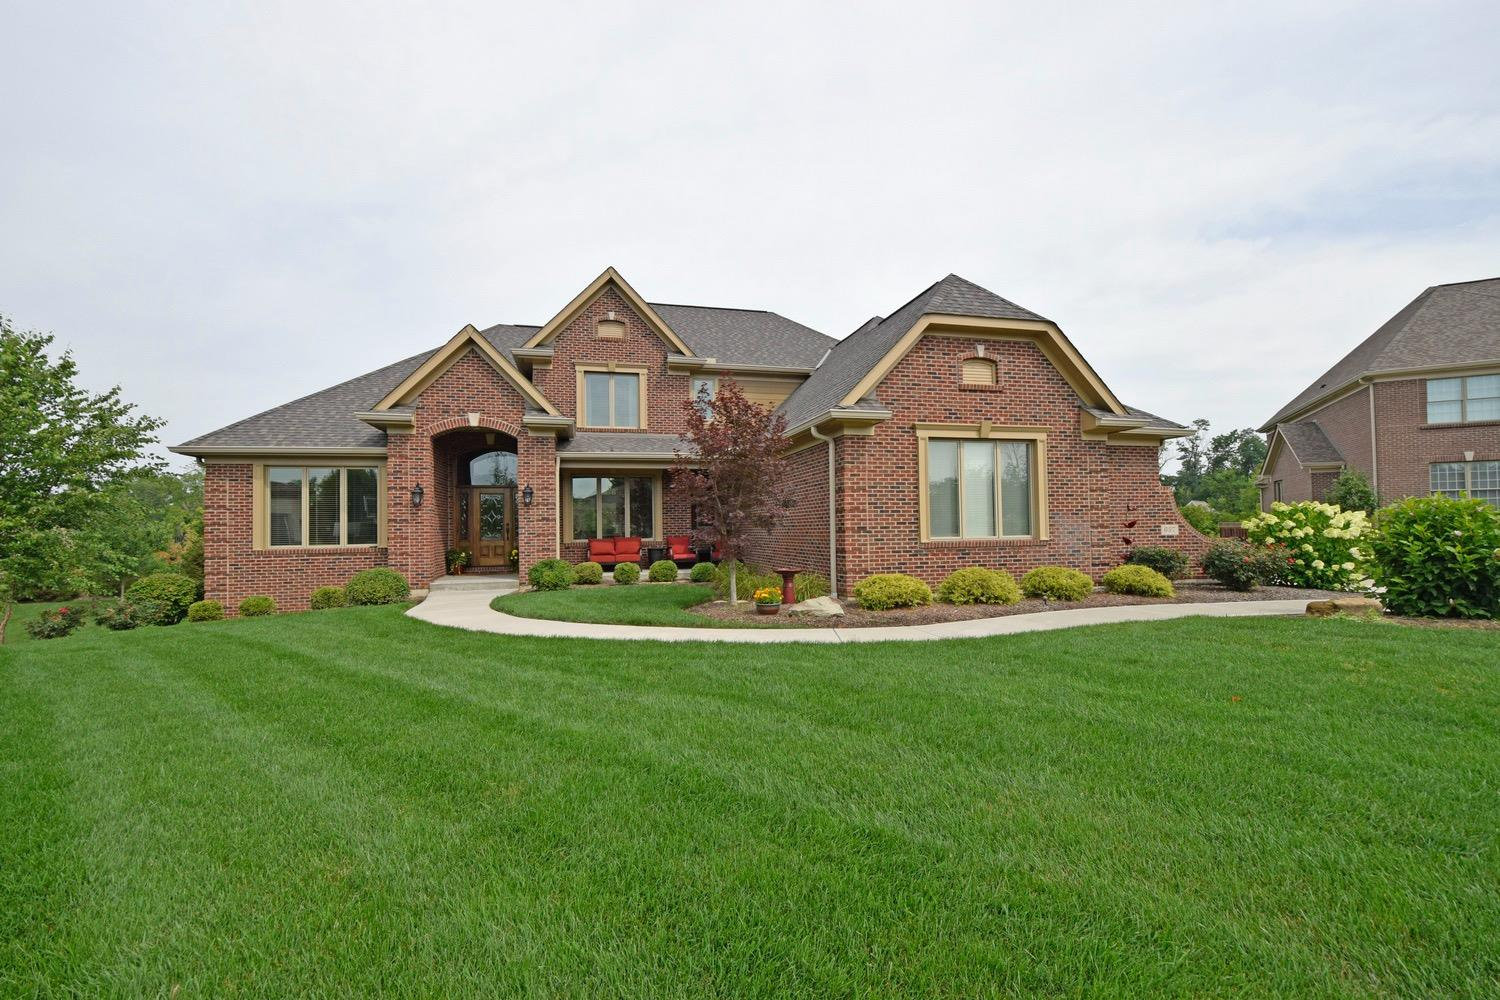 657 Copper Cove Ct Miami Twp. (East), OH